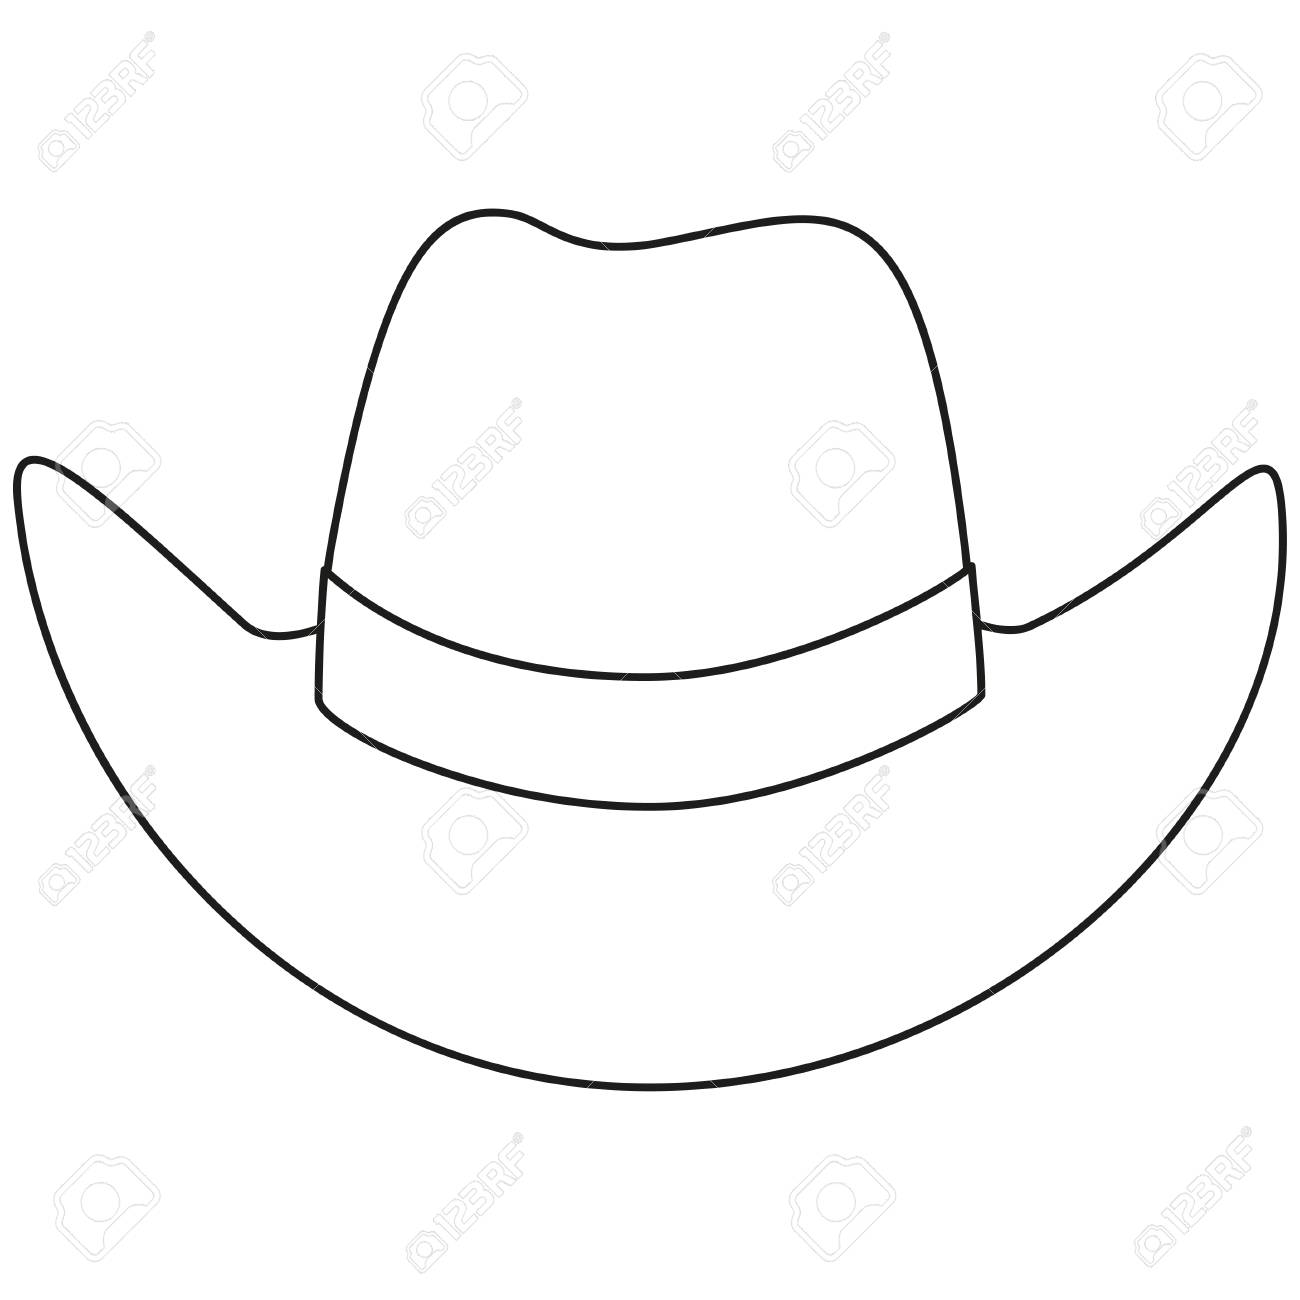 bde4fcad8b551 Line art black and white cowboy hat. Wild west vector illustration for gift  card certificate